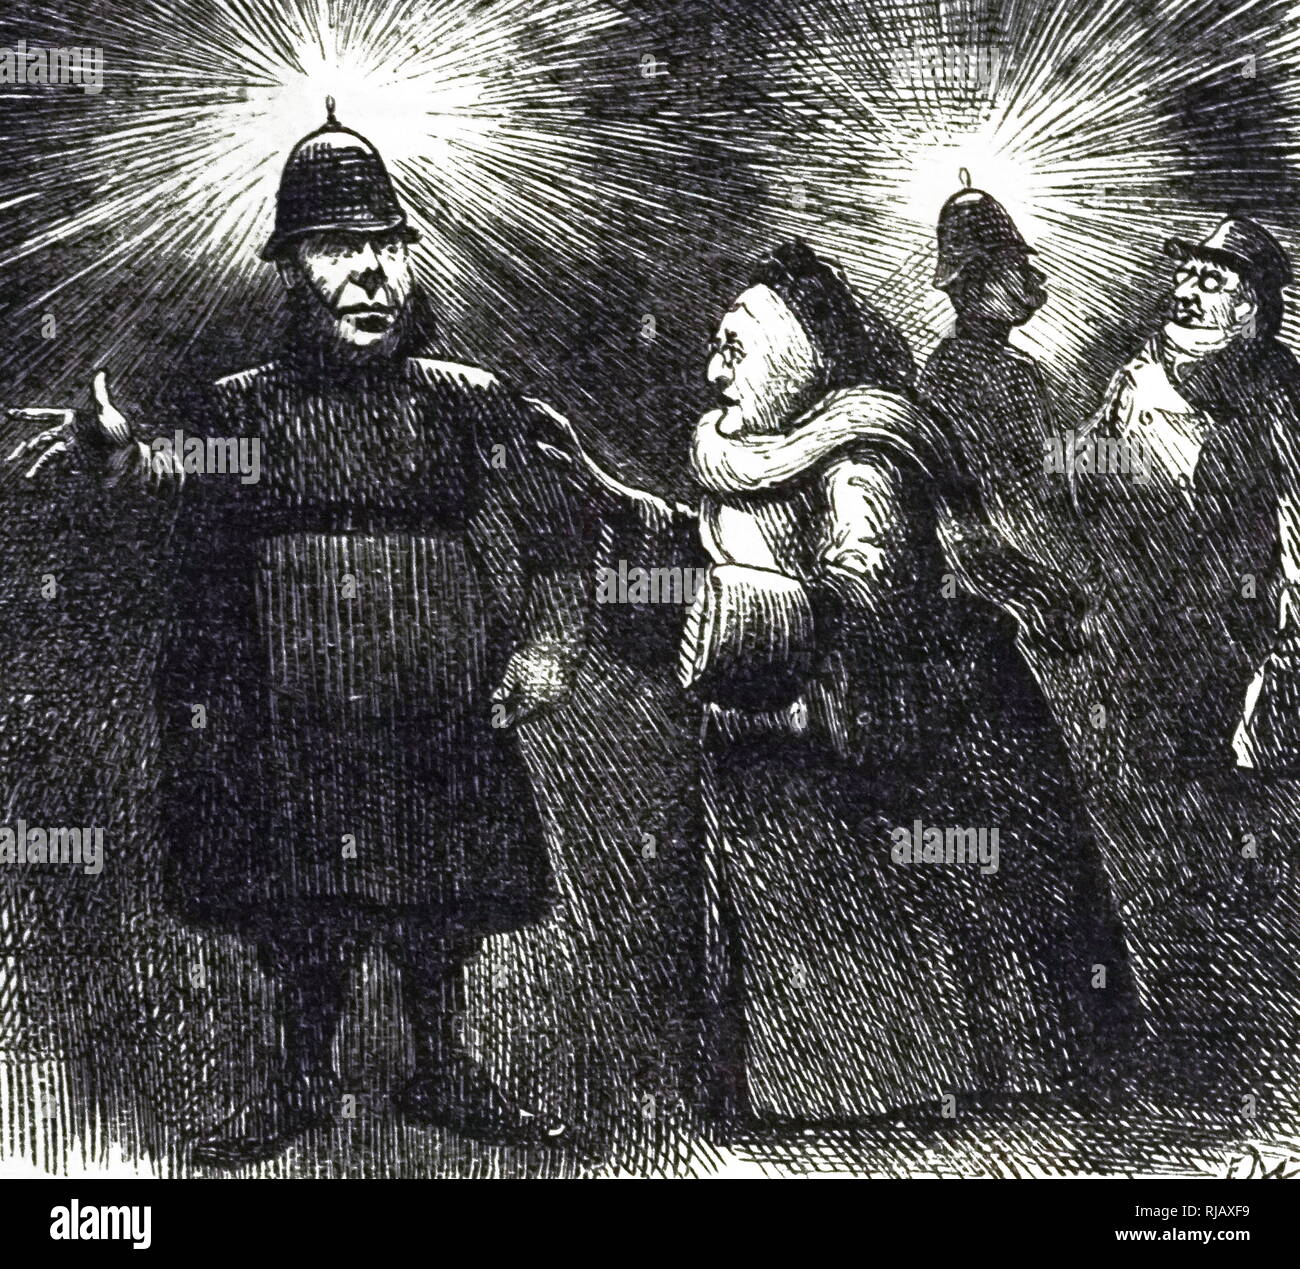 A cartoon commenting on the usefulness of electric lighting. Dated 19th century - Stock Image